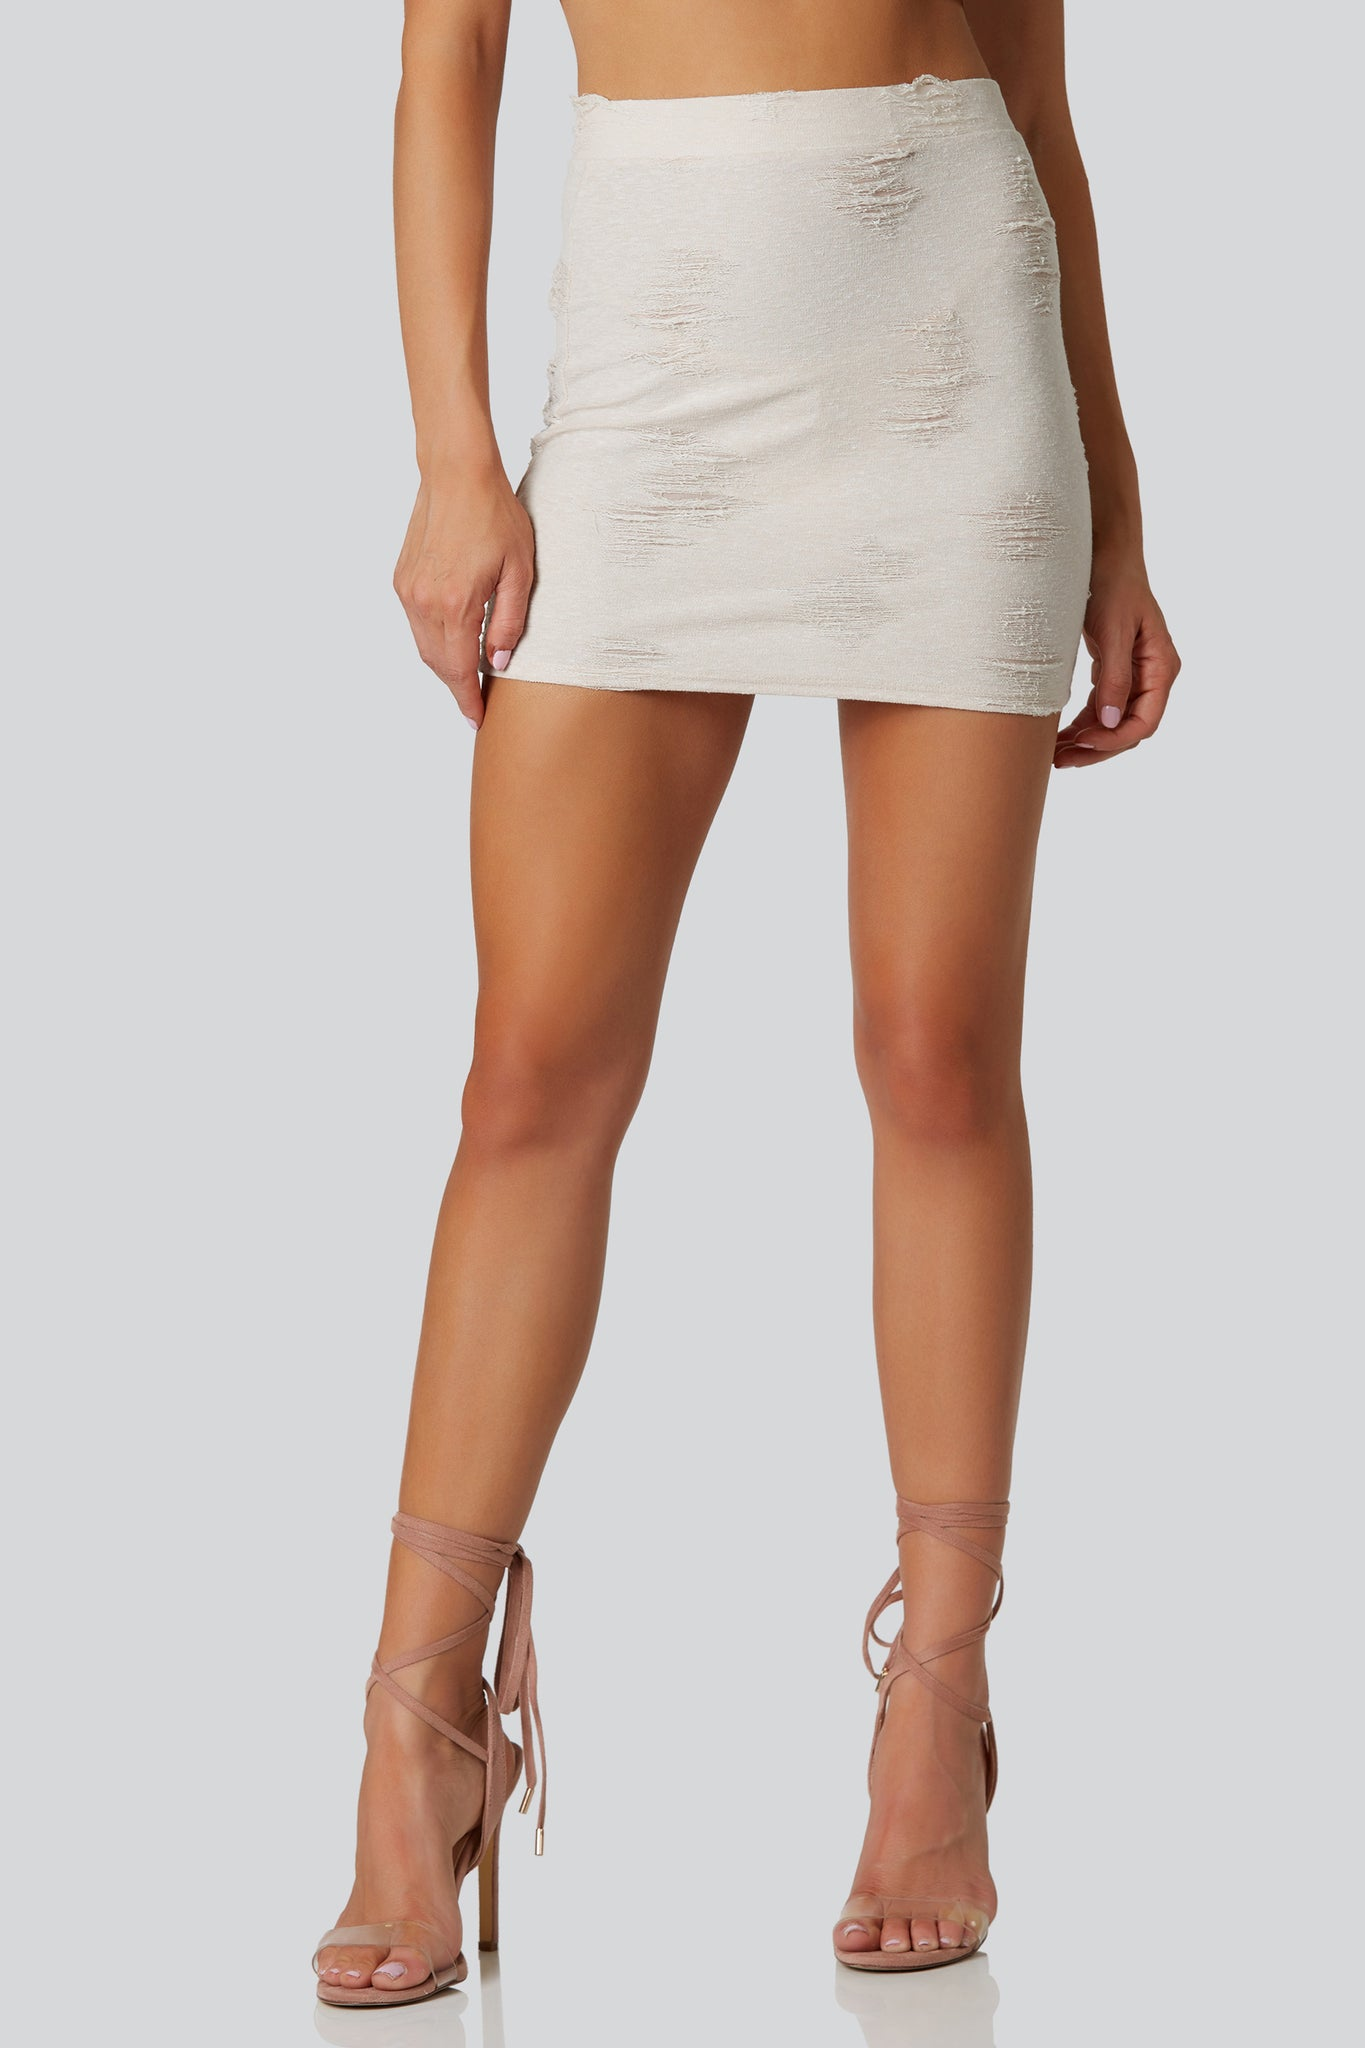 Casual bodycon mini skirt with distressing throughout. Stretchy material with straight hem finish.